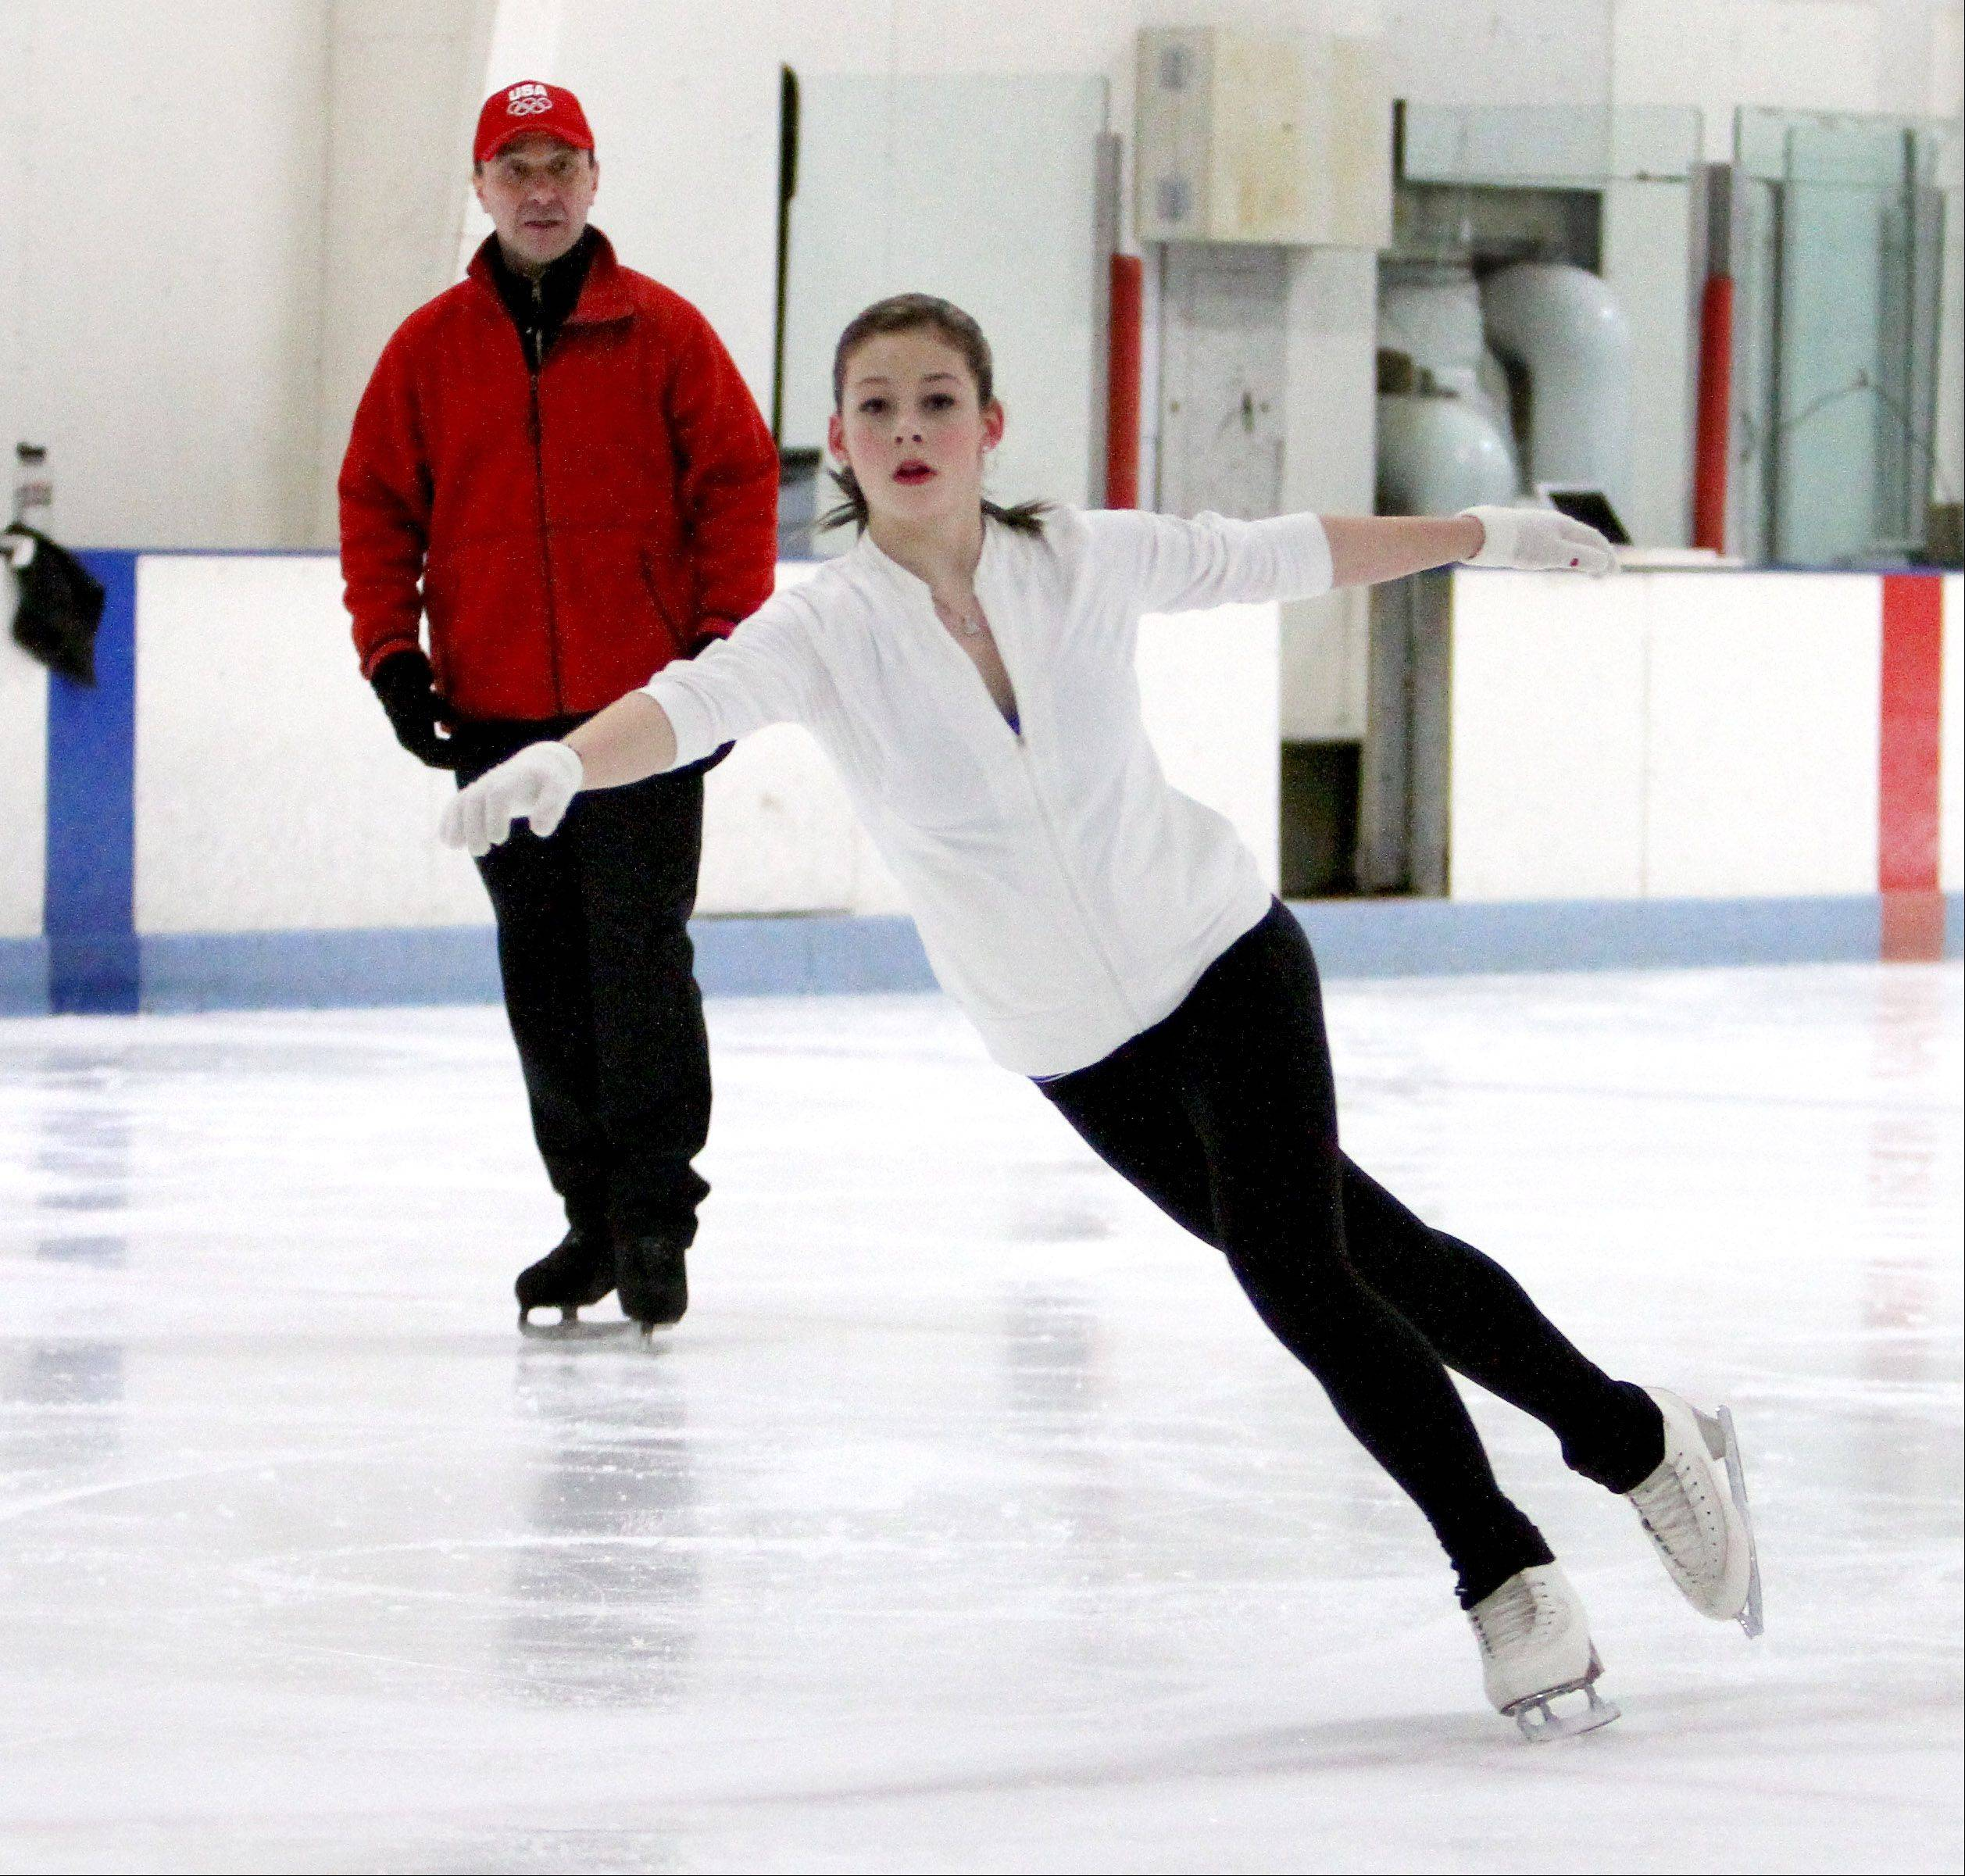 U.S. Women's Figure Skating Team member Gracie Gold trains at Center Ice of DuPage in Glen Ellyn as one of her coaches Oleg Epstein, looks on.